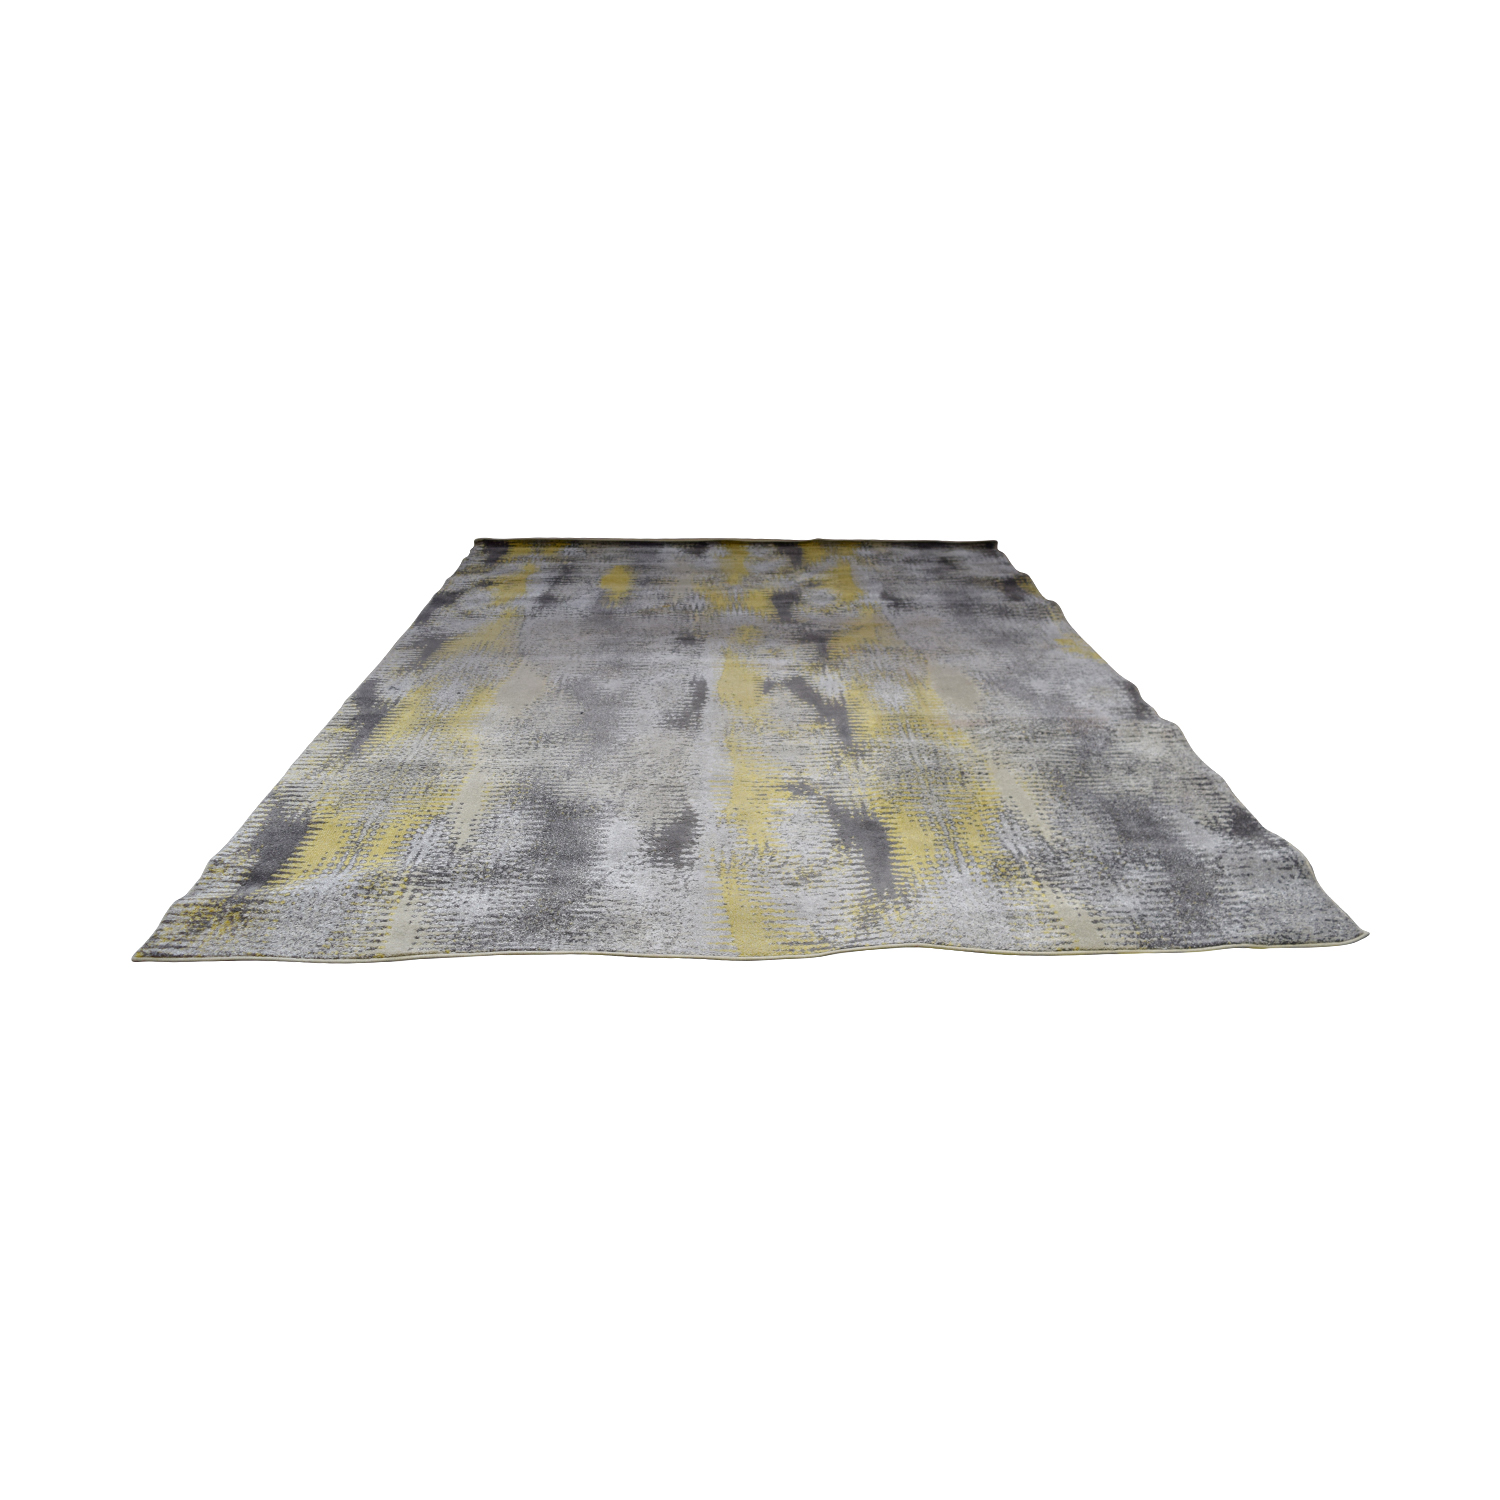 Daylan Rug Co Yellow and Grey Rug / Sofas